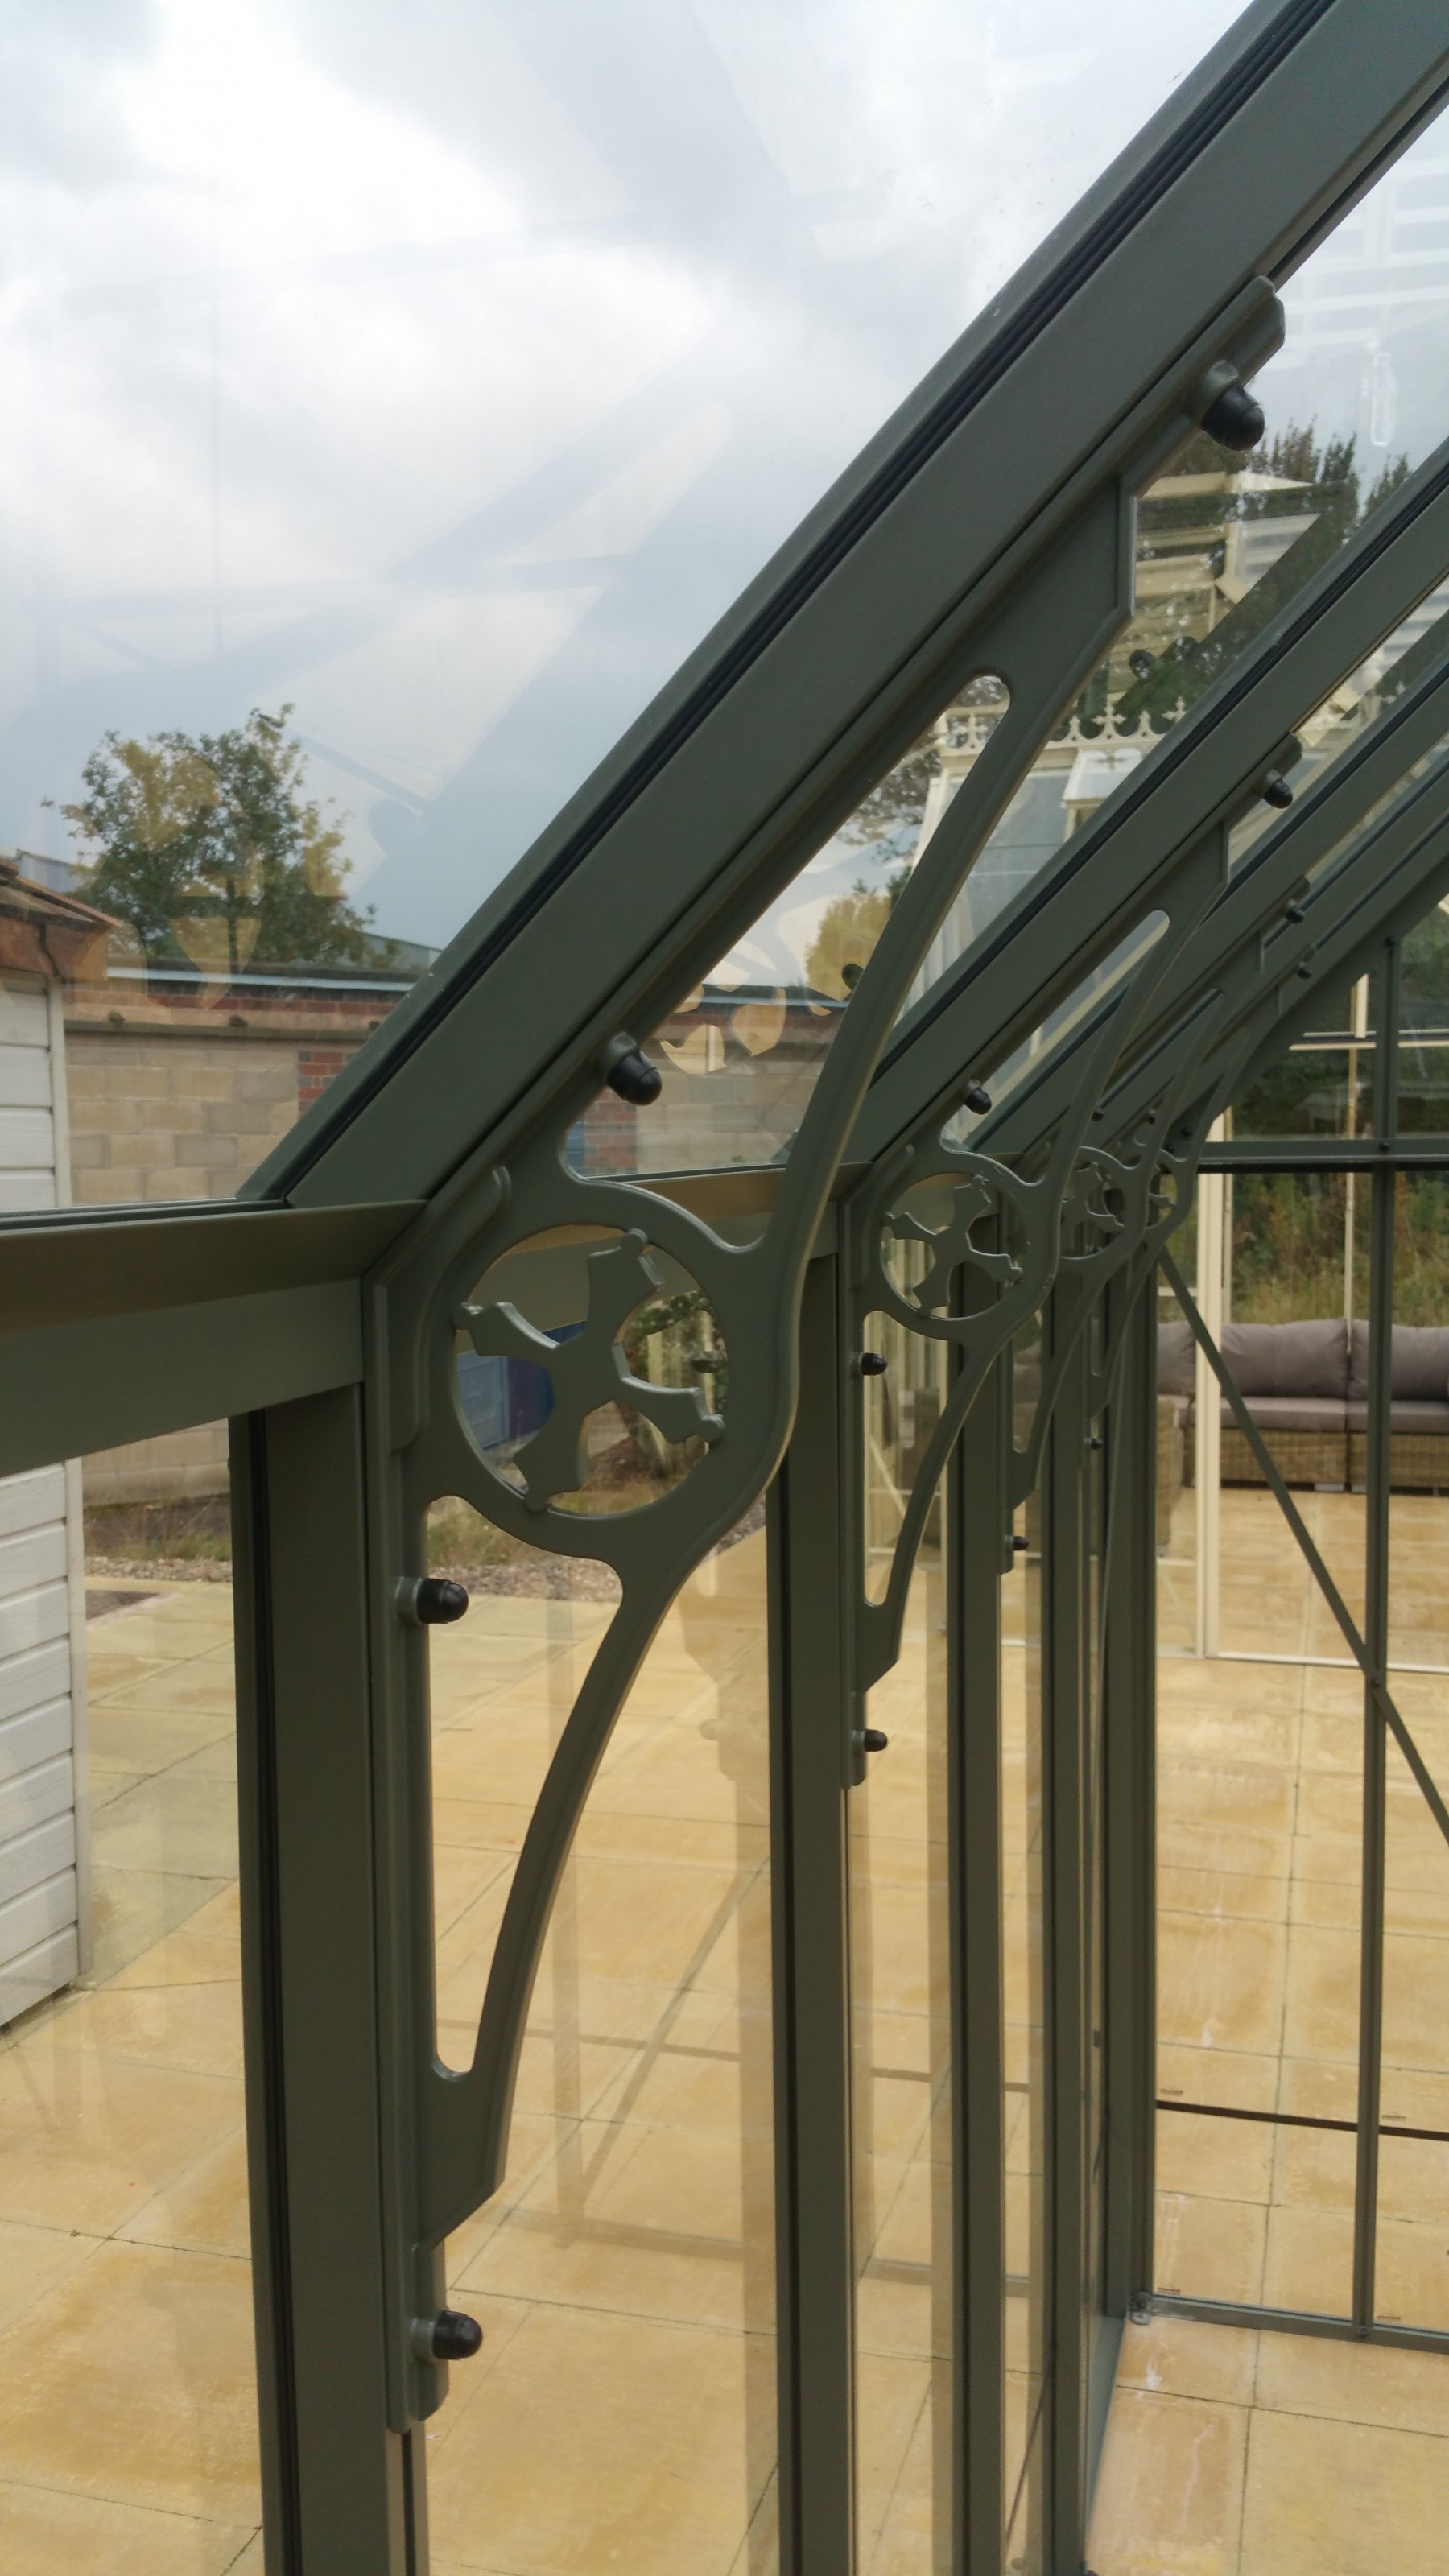 Robinsons cast aluminium, Victorian-style spandrels, for additional strength